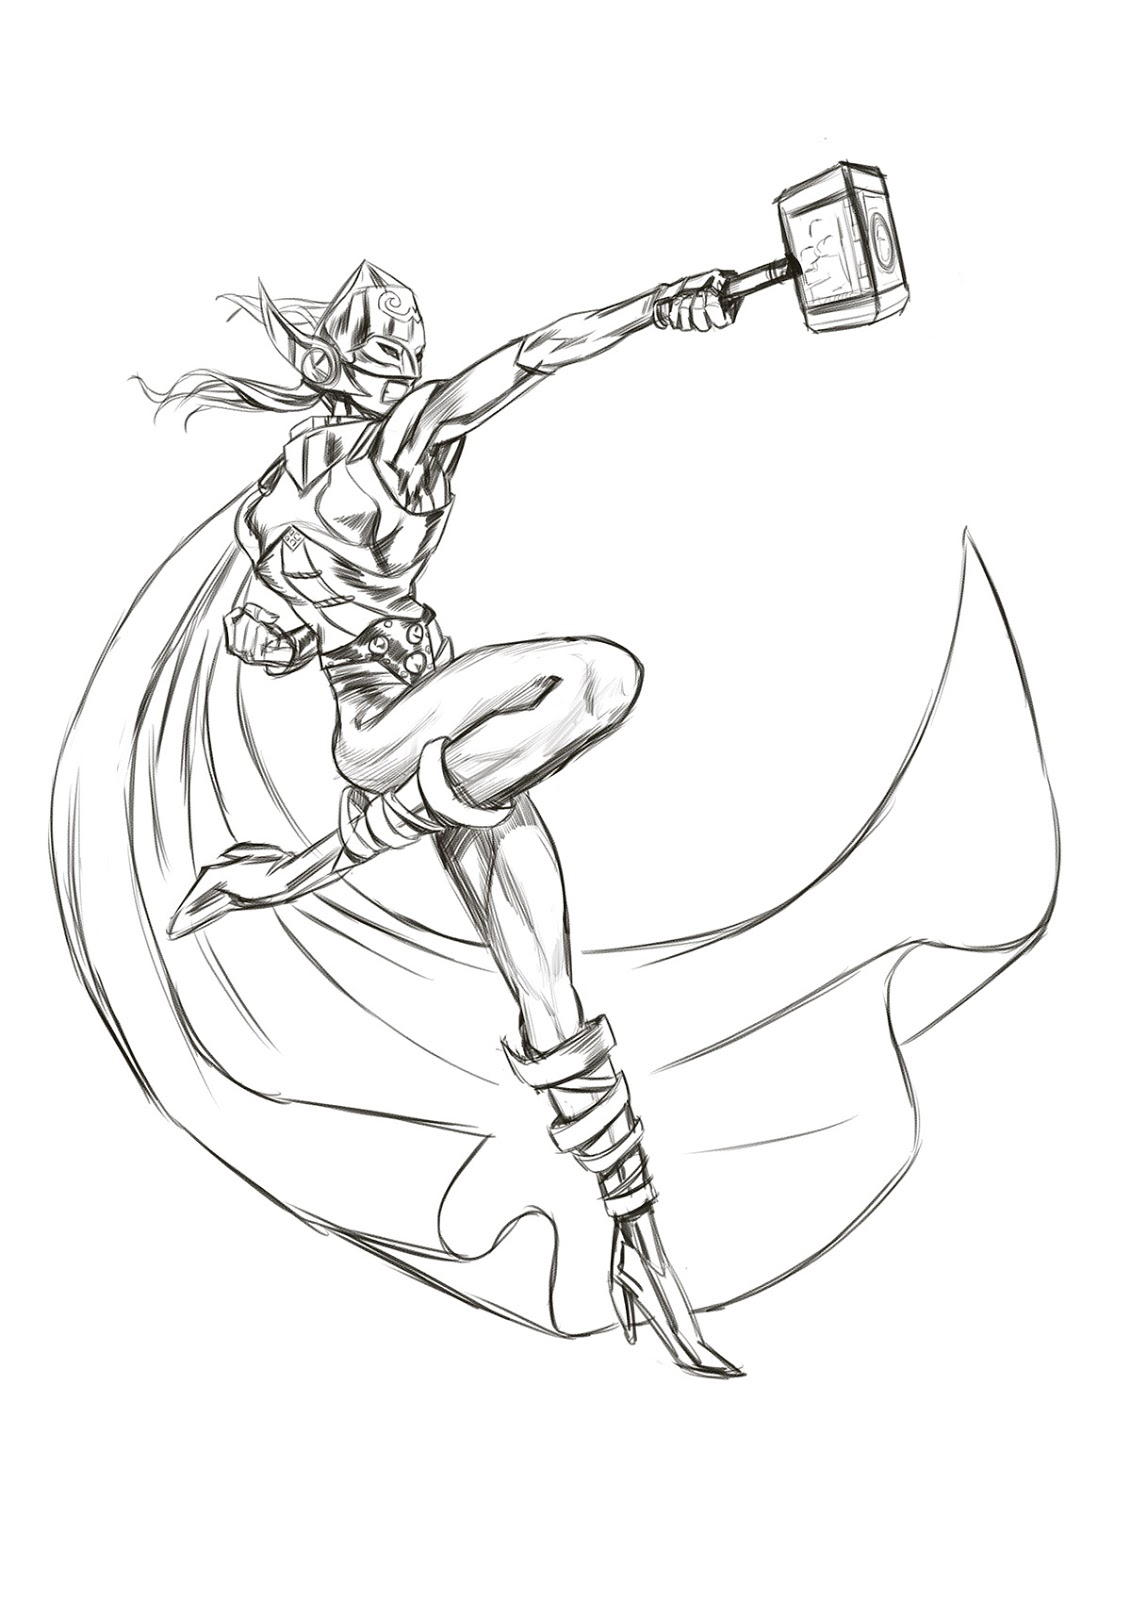 Let's Storyboard: Marvel's New She Thor Sketch 2